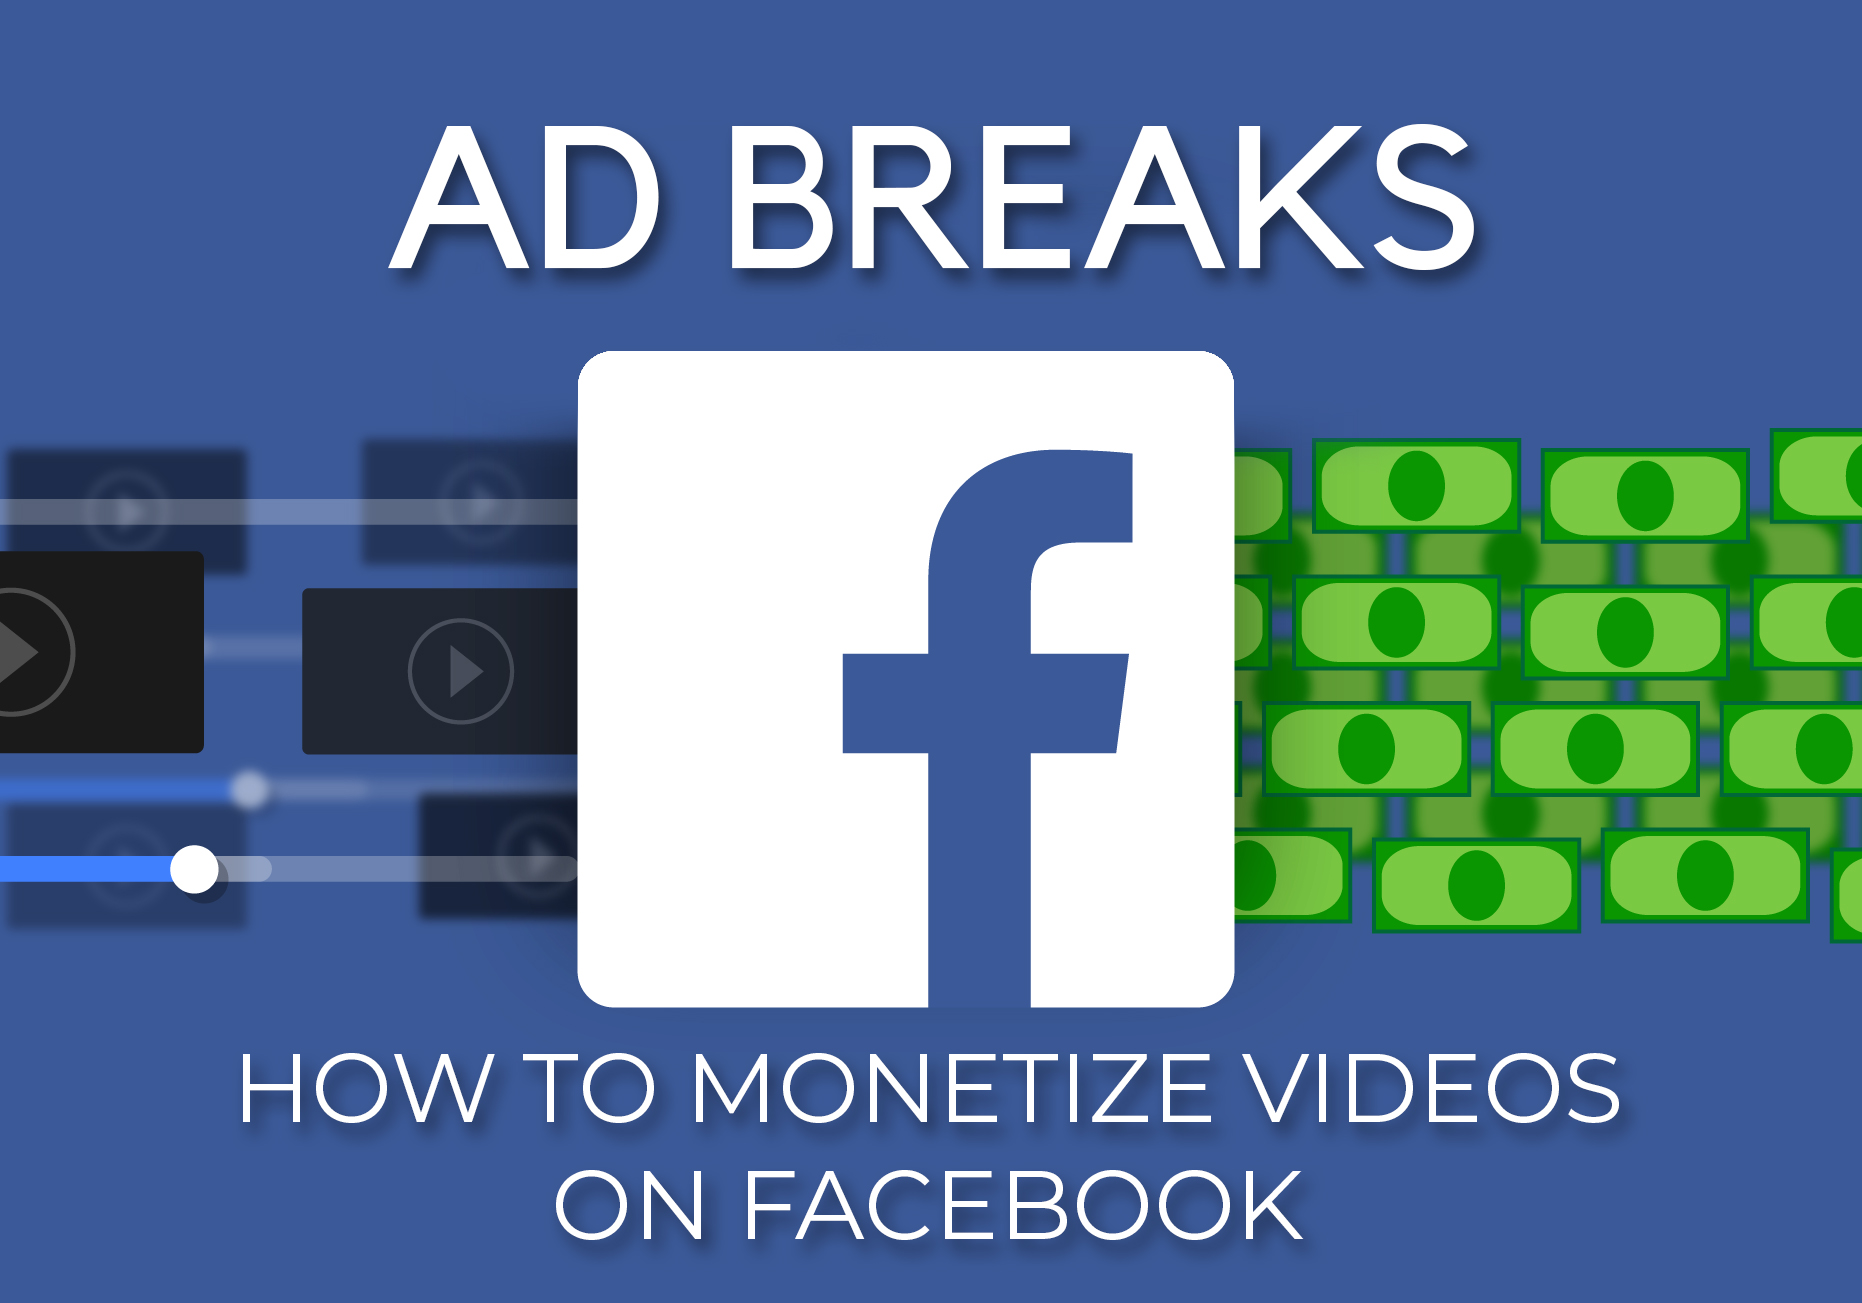 FACEBOOK AD BREAKS – How to monetize videos on Facebook